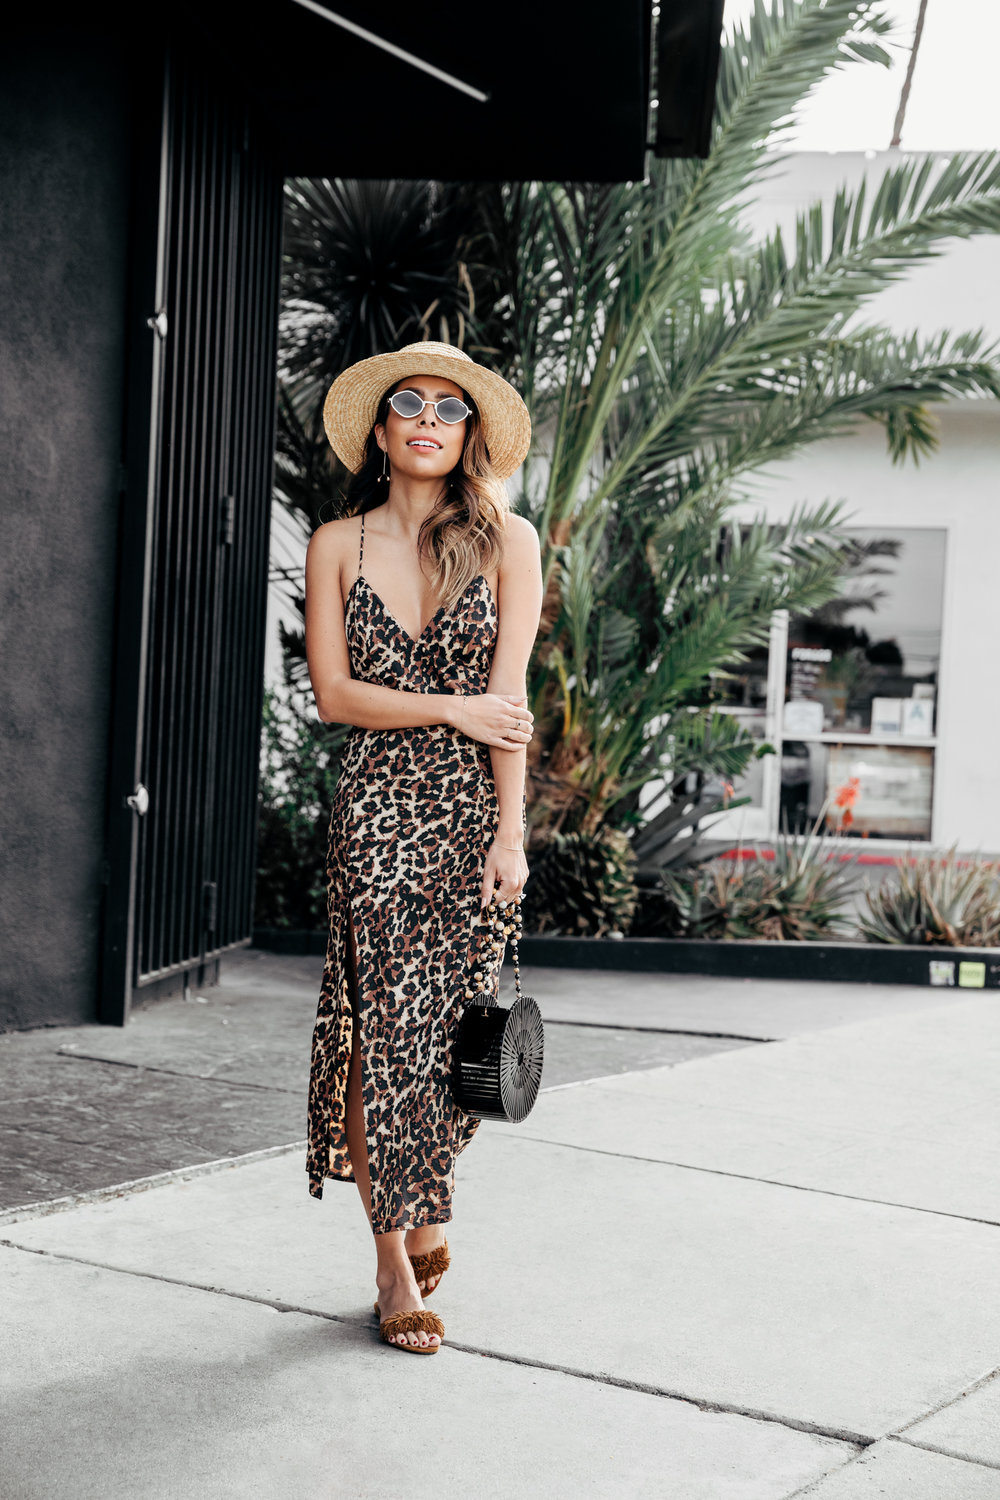 Leopard Slip Dress for Palm Springs Vacation - Everyday Pursuits